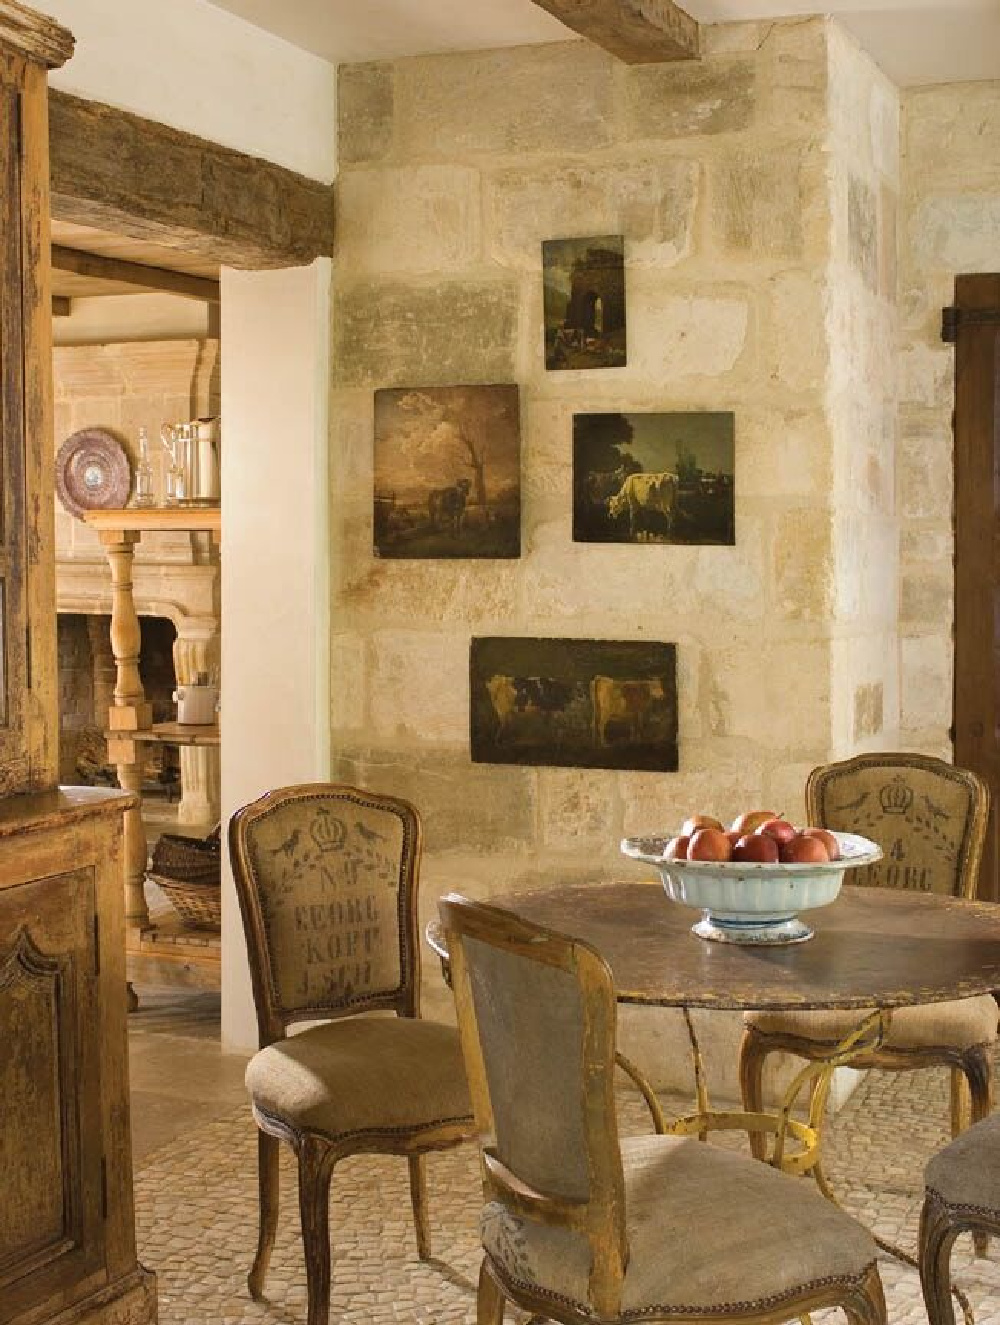 Pale tone on tone palette with reclaimed limestone walls and floors in a modern French breakfast dining room (Chateau Domingue). #oldworldstyle #europeancountry #modernfrench #frenchfarmhouse